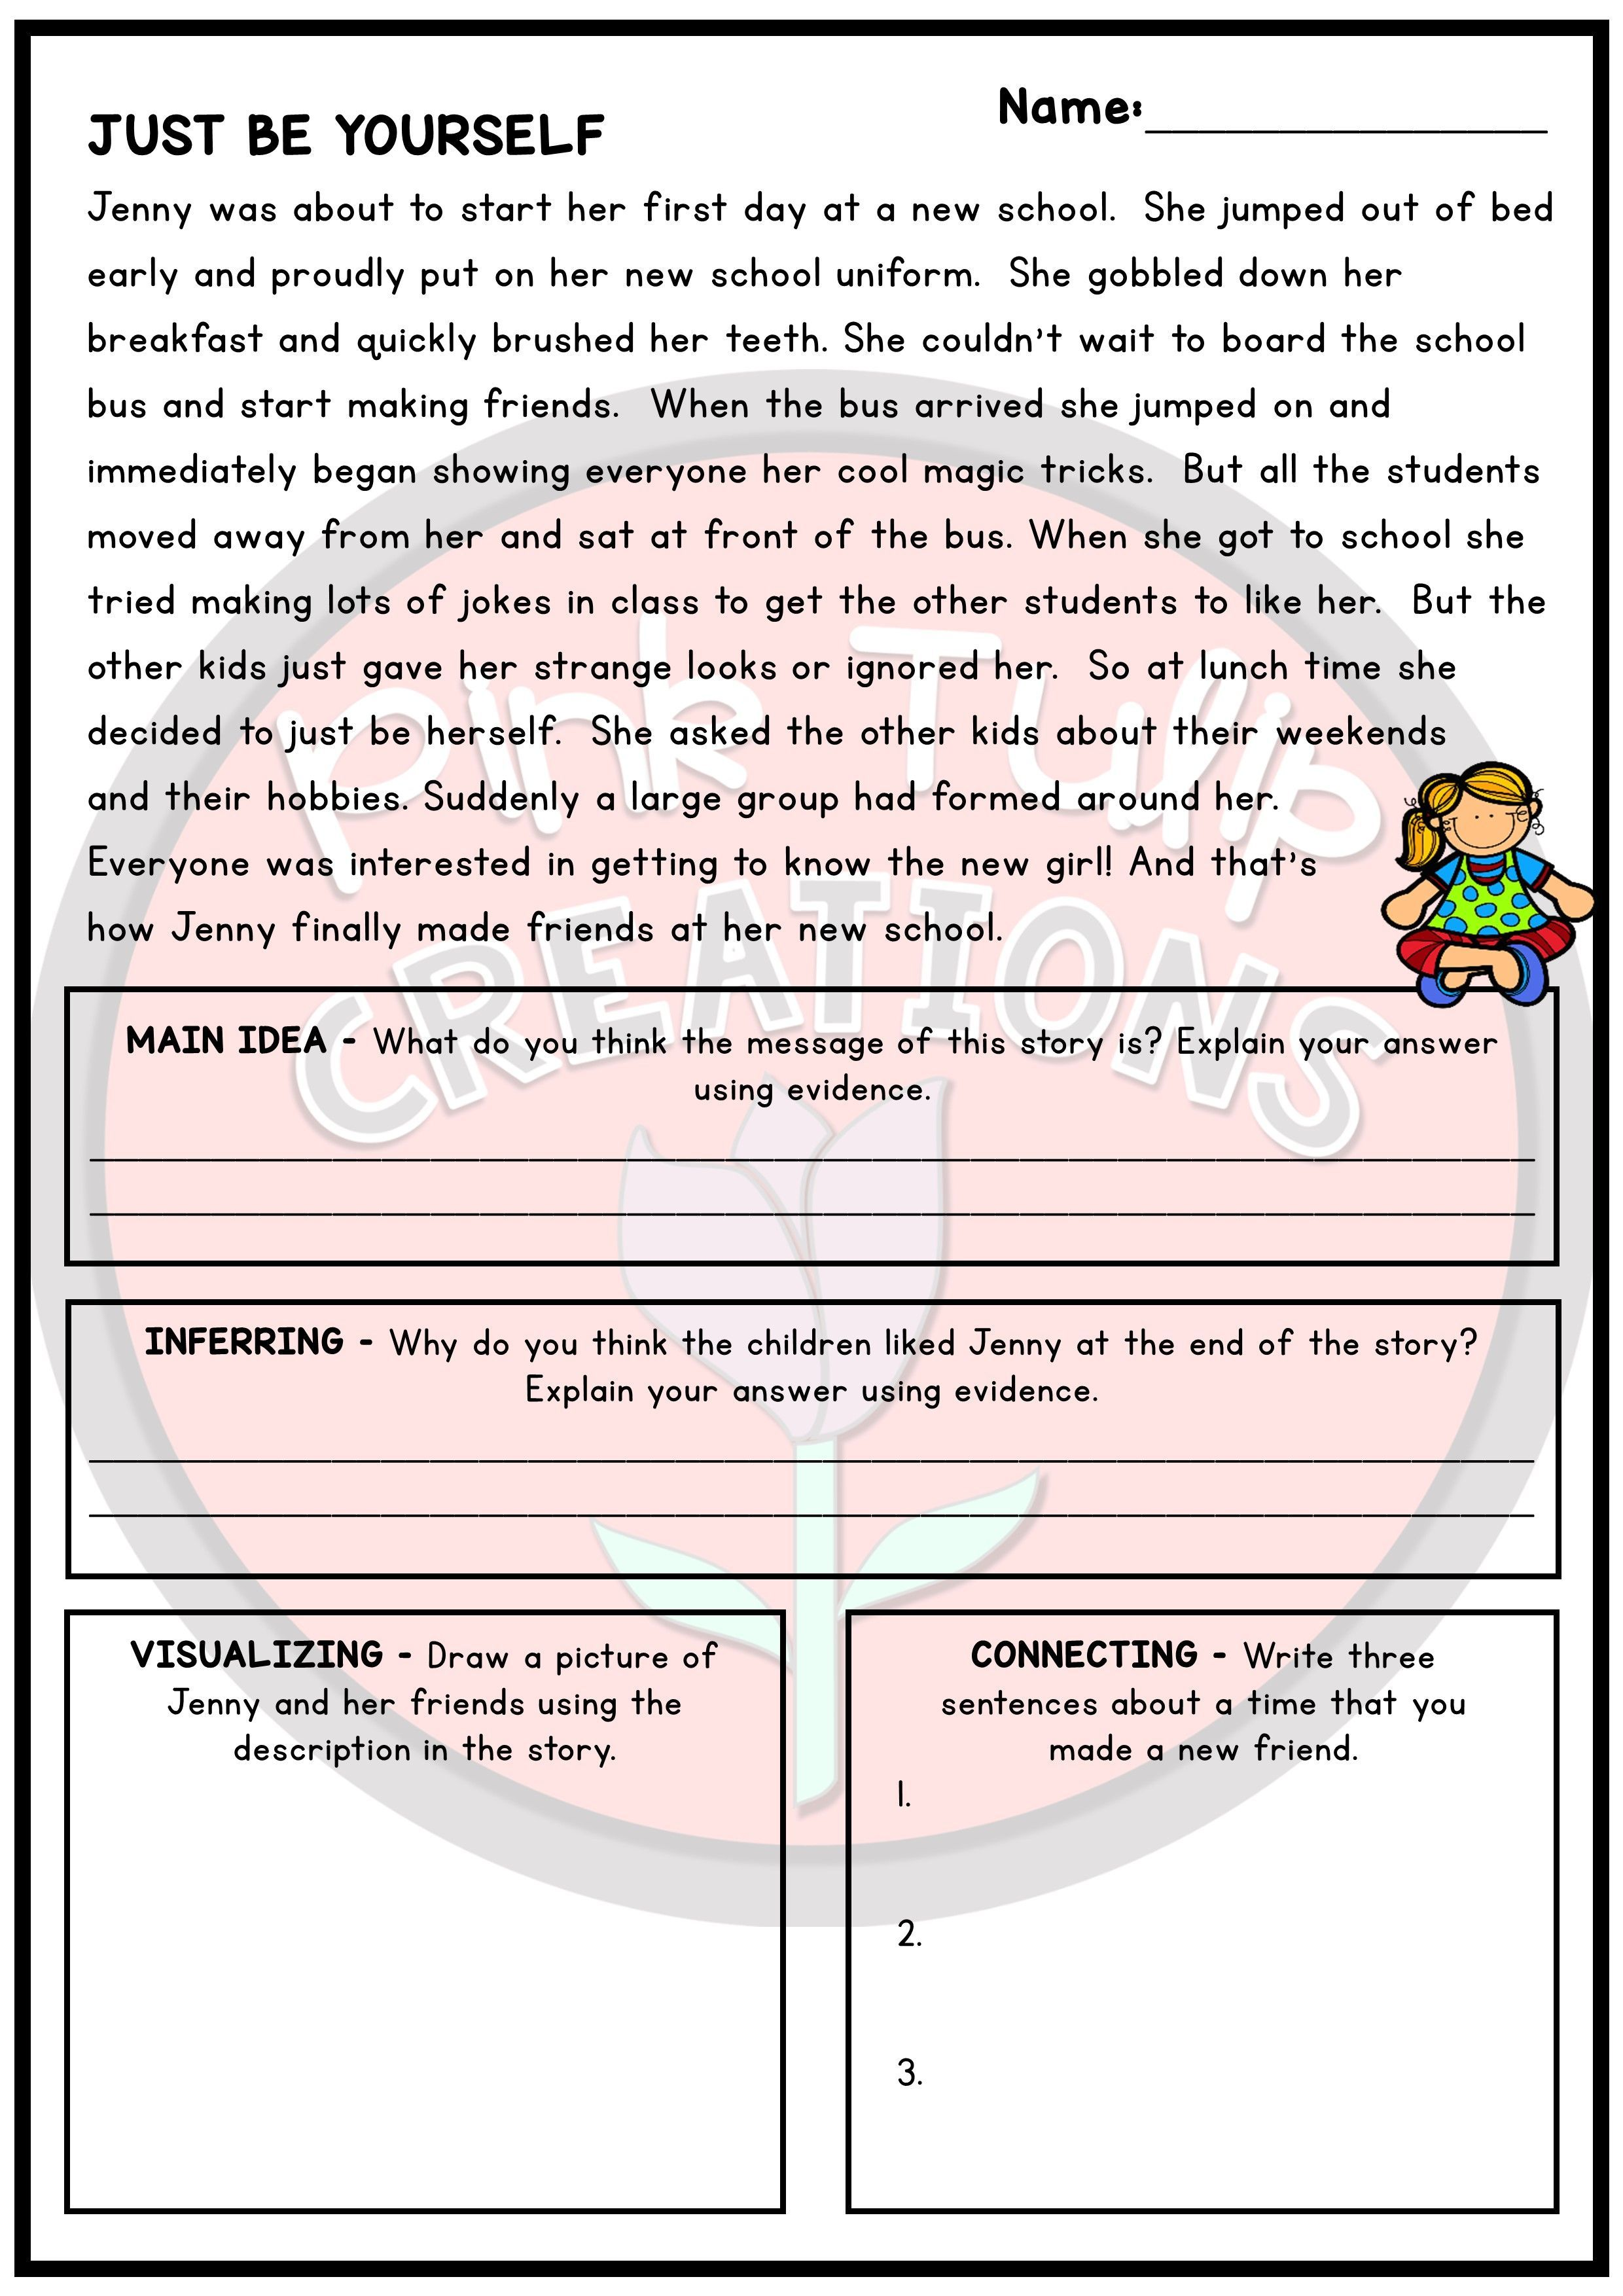 30 Page Reading Strategy Comprehension Pack In 2021 Reading Strategies Comprehension Reading Comprehension Worksheets [ 3508 x 2480 Pixel ]